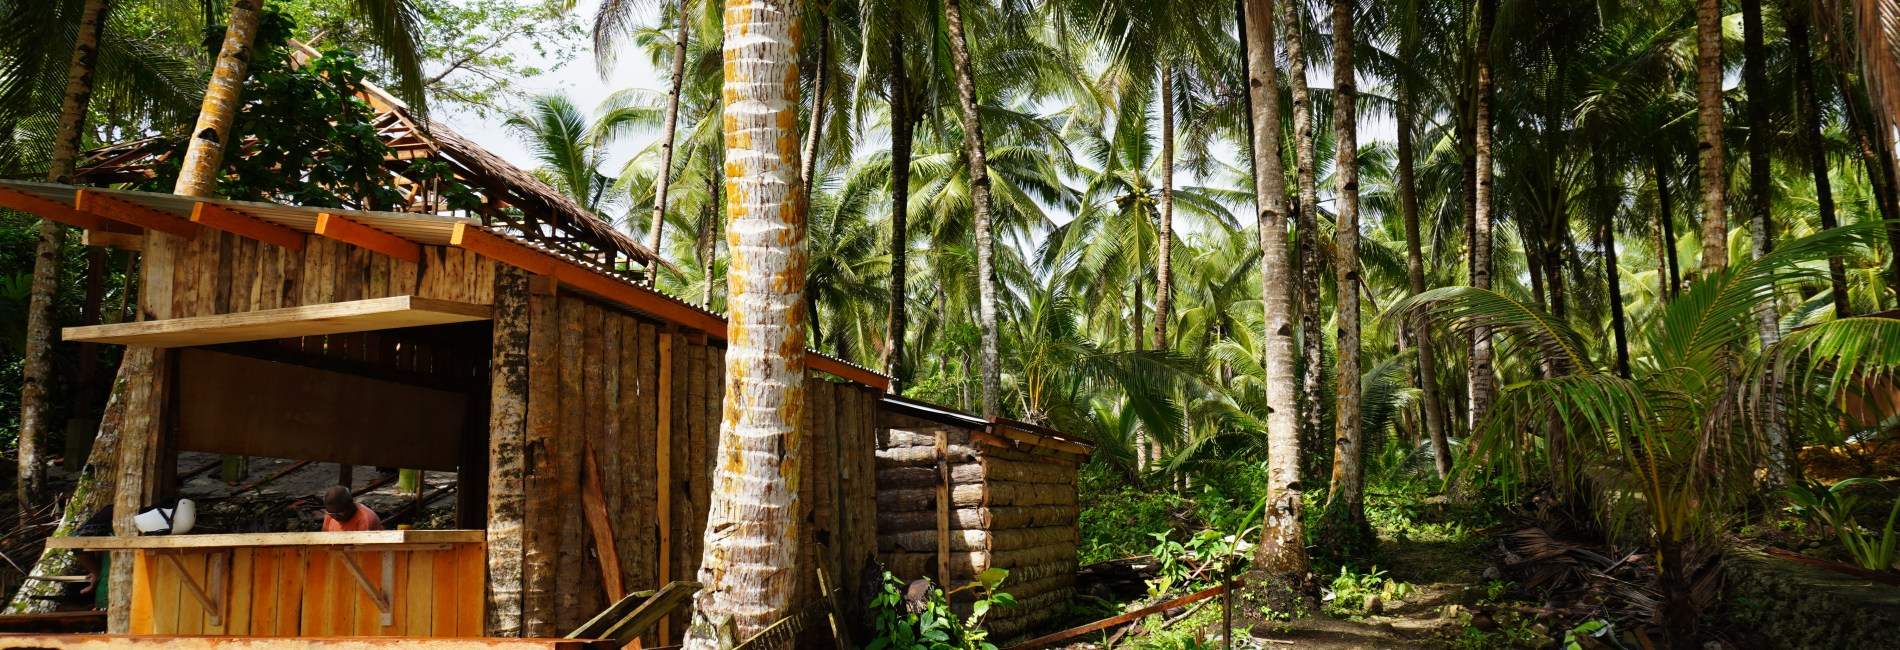 Travel Guide to Siargao Island, Philippines